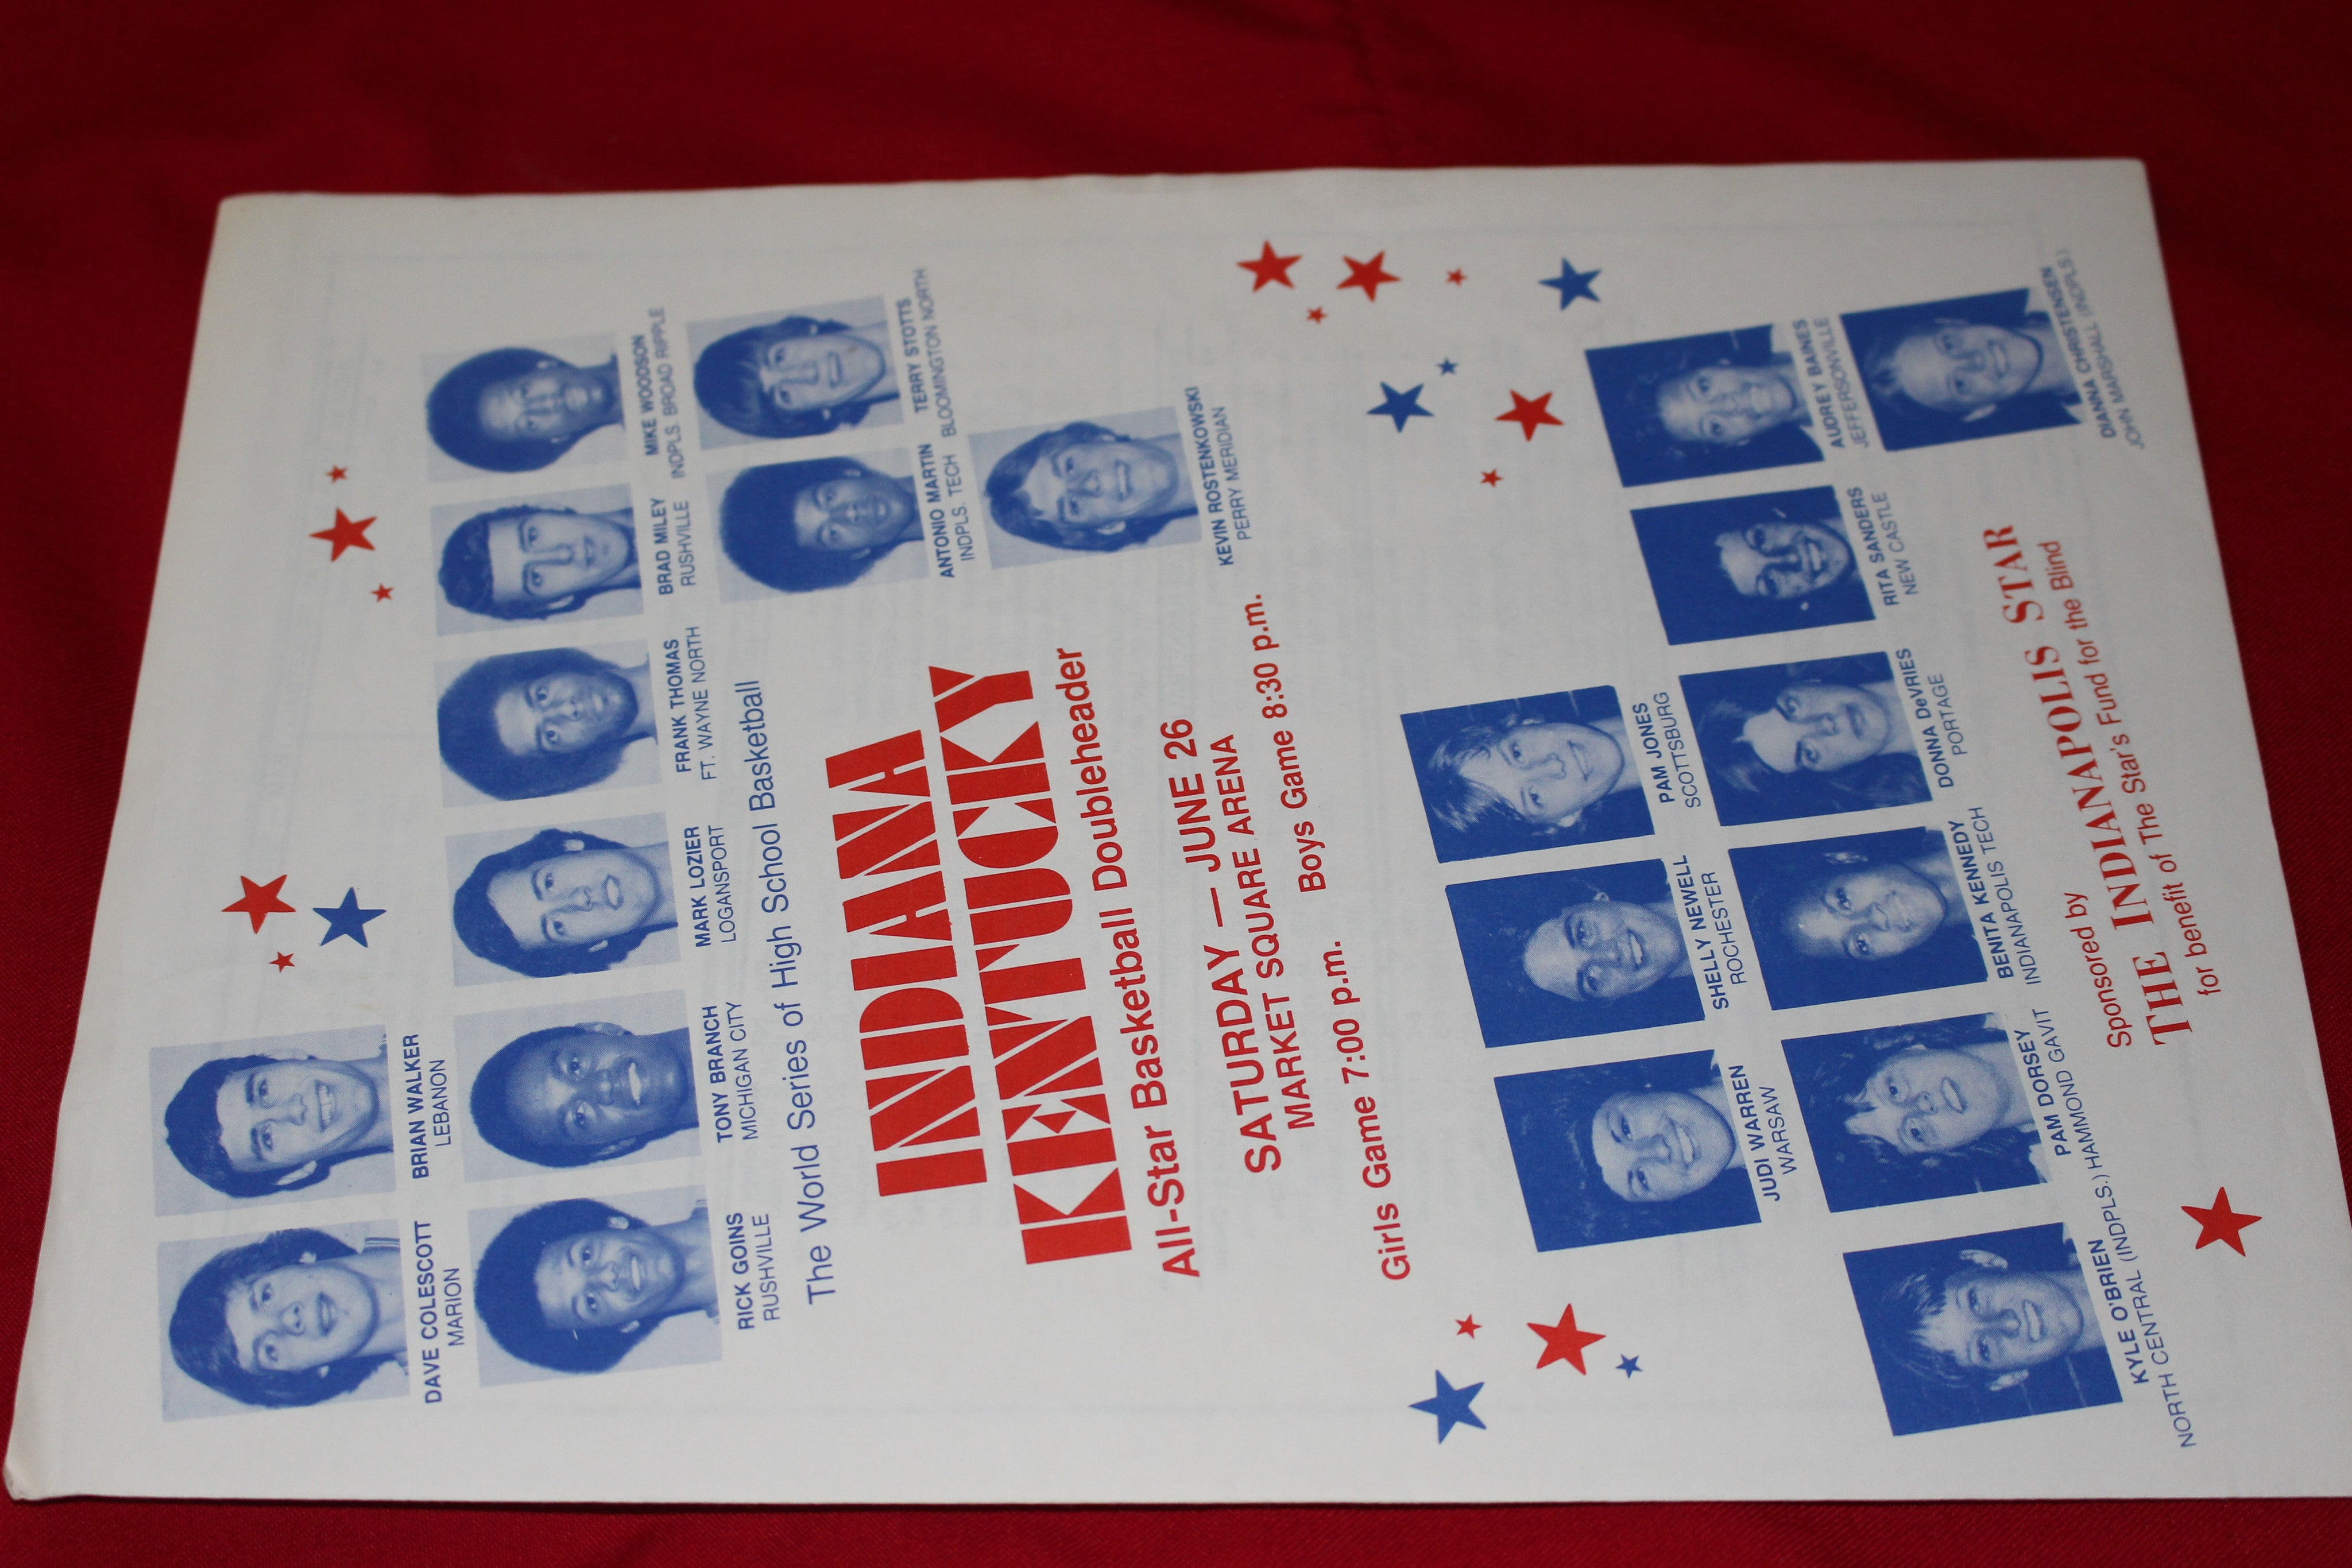 1976 Indiana vs Kentucky High School Basketball All Star Game Program - Vintage Indy Sports